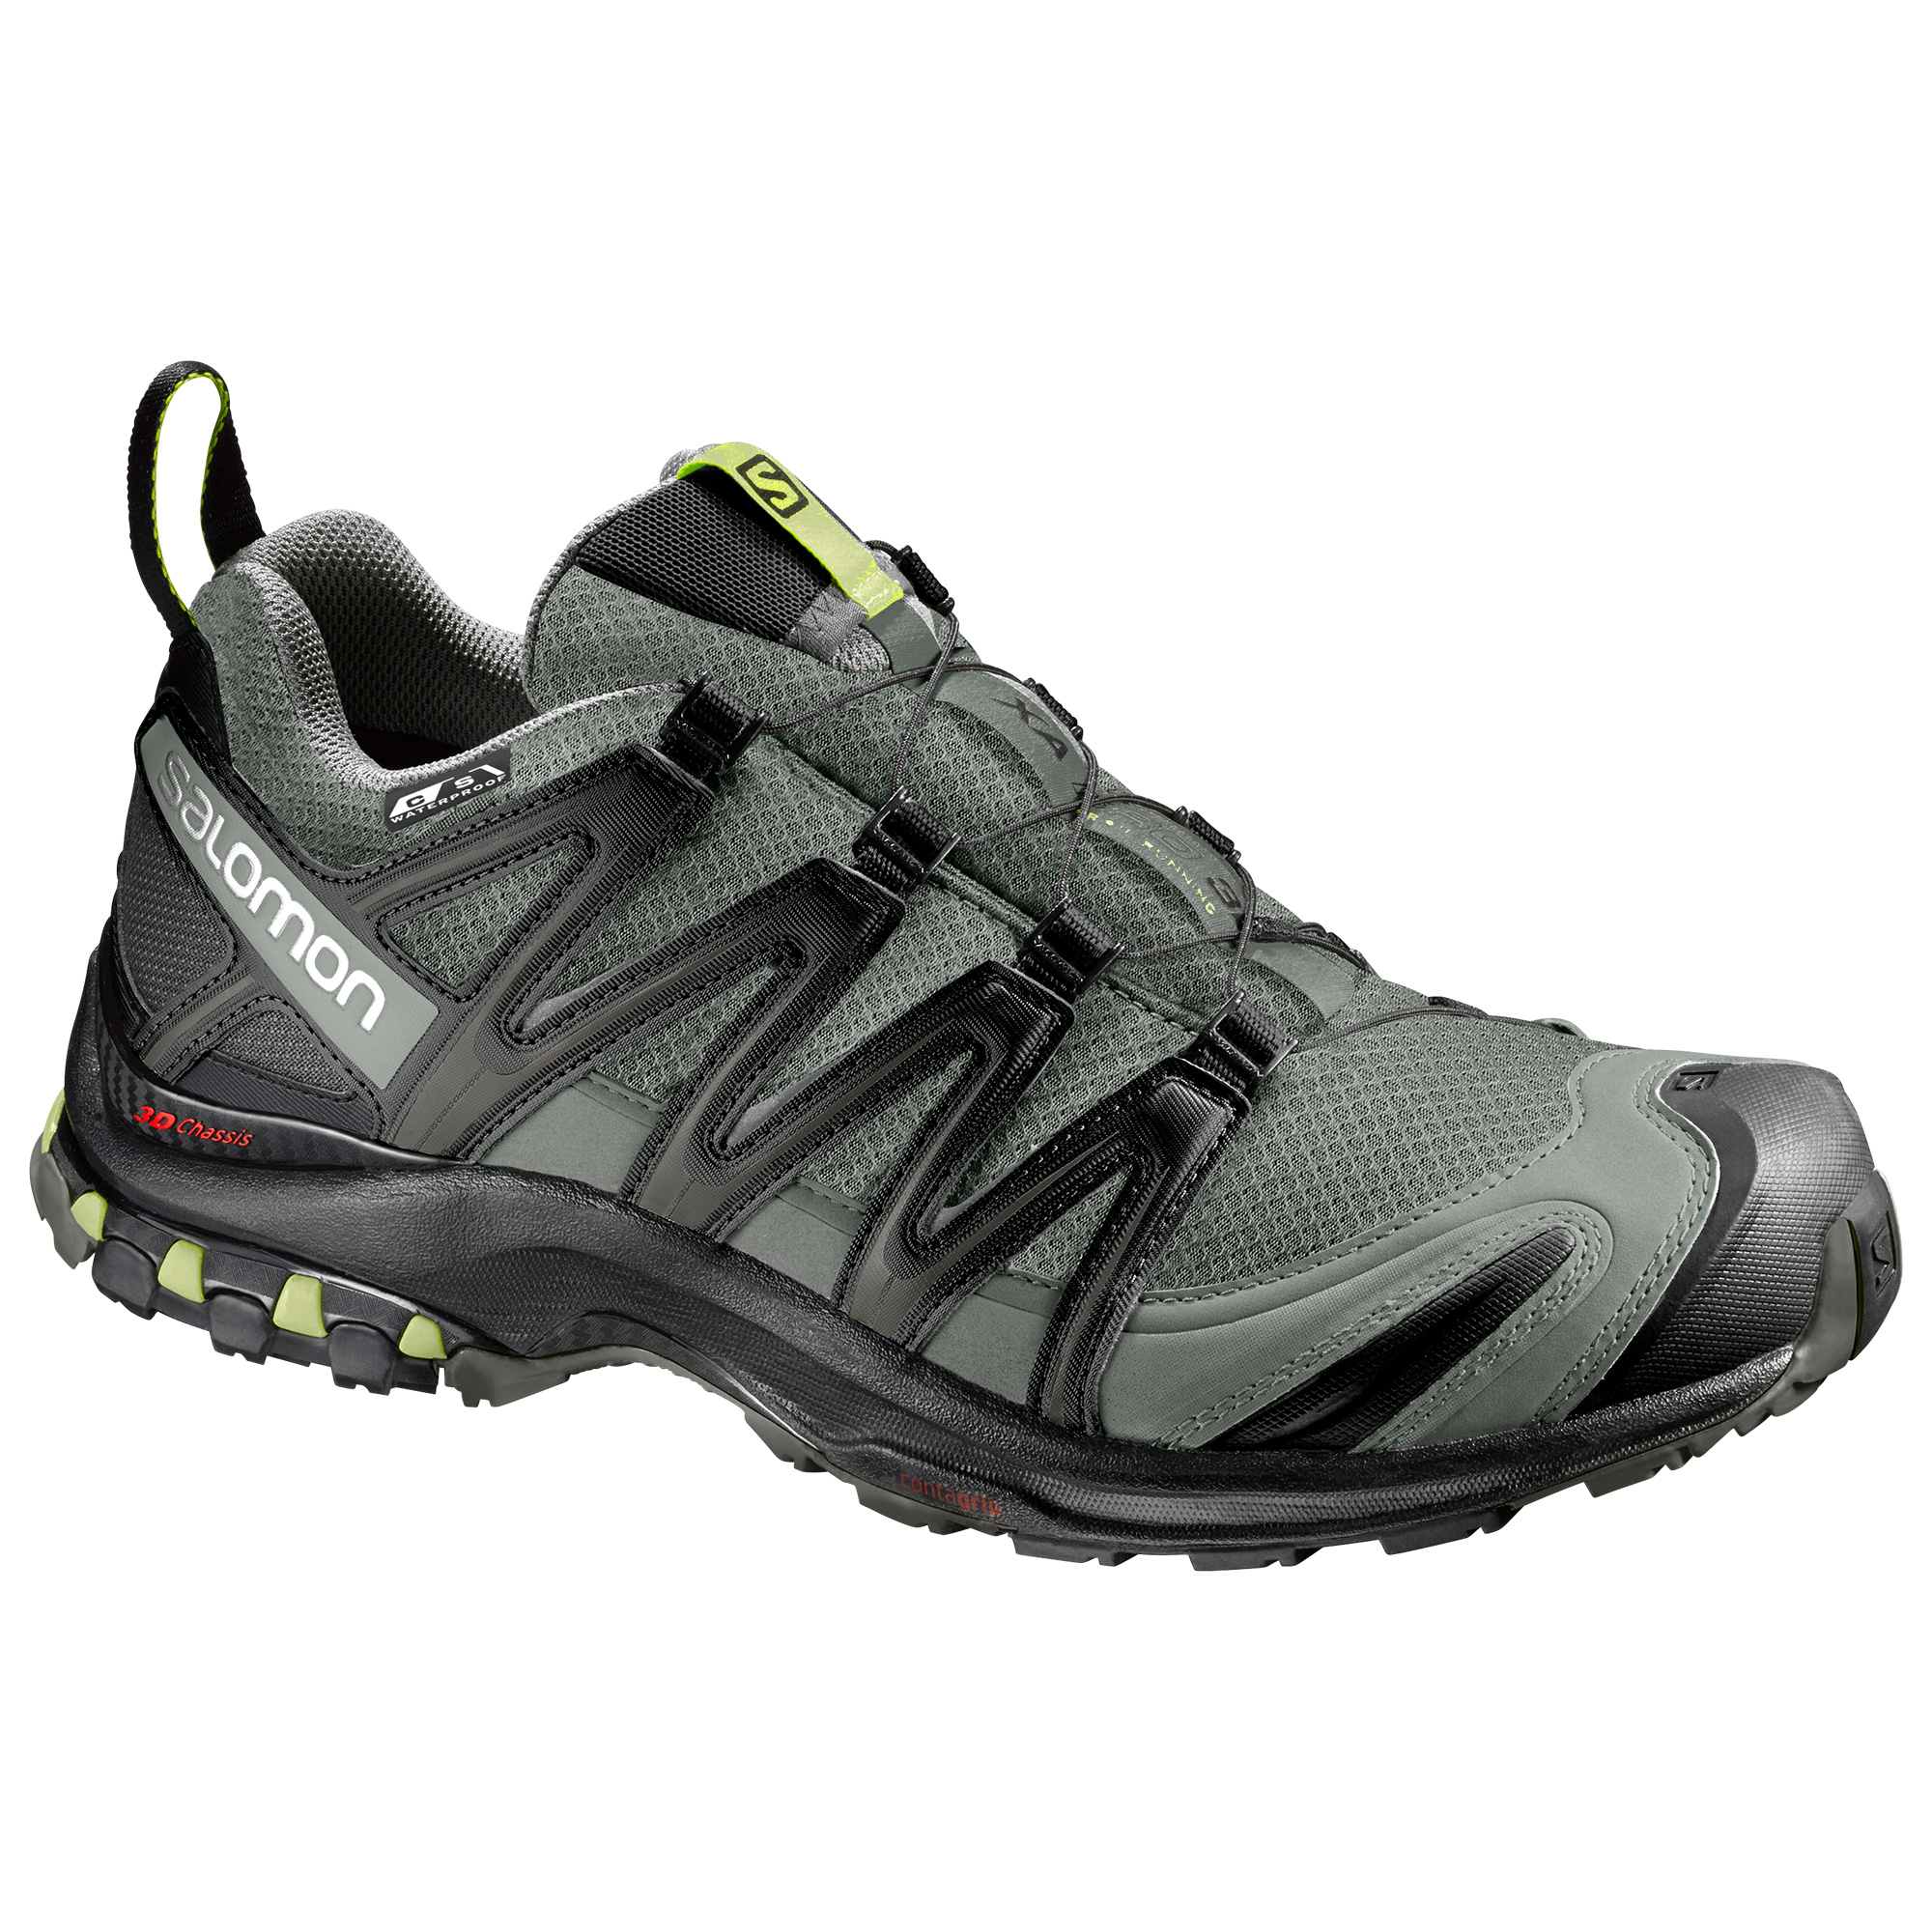 separation shoes ff386 d4791 Salomon XA Pro 3D CS WP Trail Running Shoe - Mens w  Free S H — 28 models